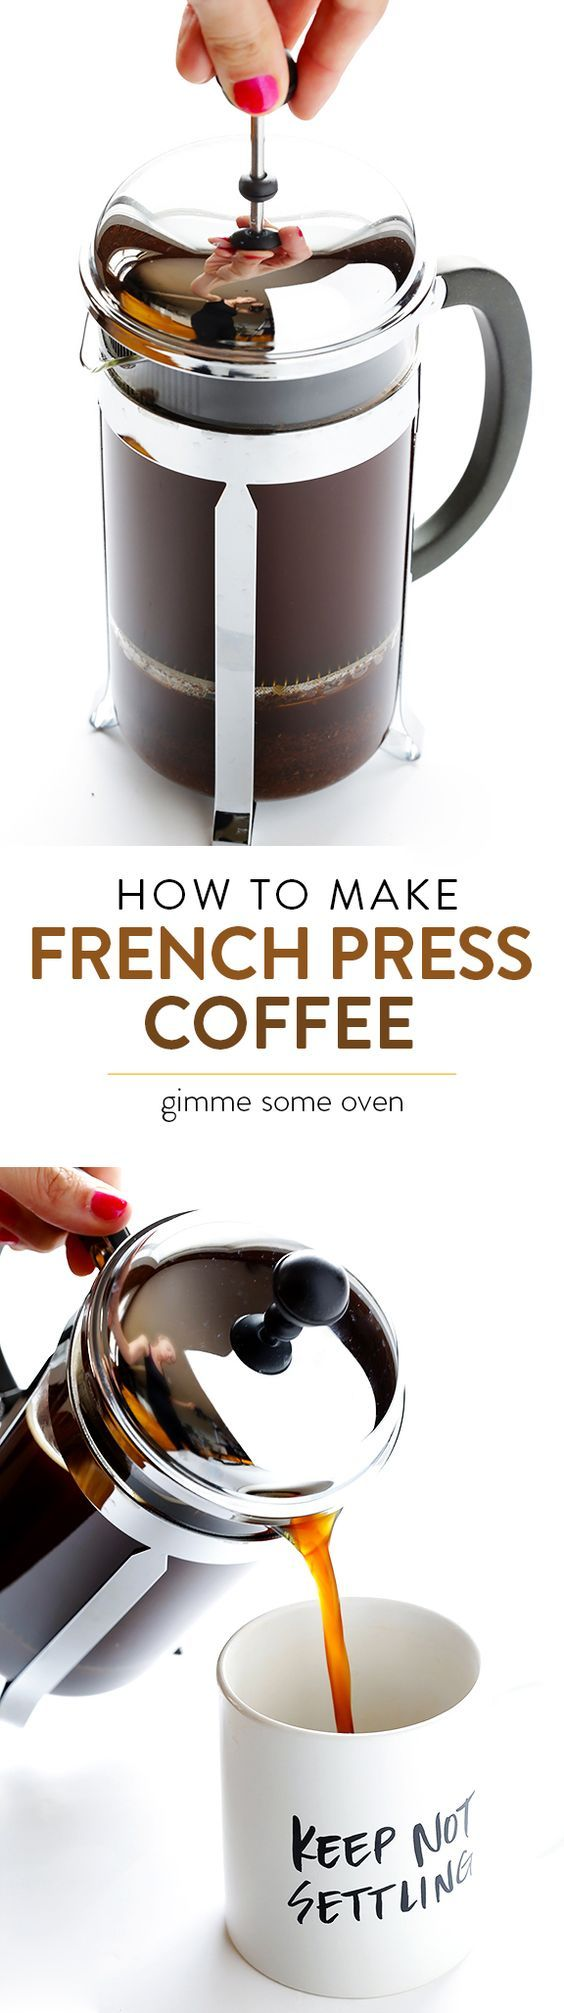 Siphon Coffee Maker Nz : The 25+ best Commercial coffee makers ideas on Pinterest Commercial coffee machines ...